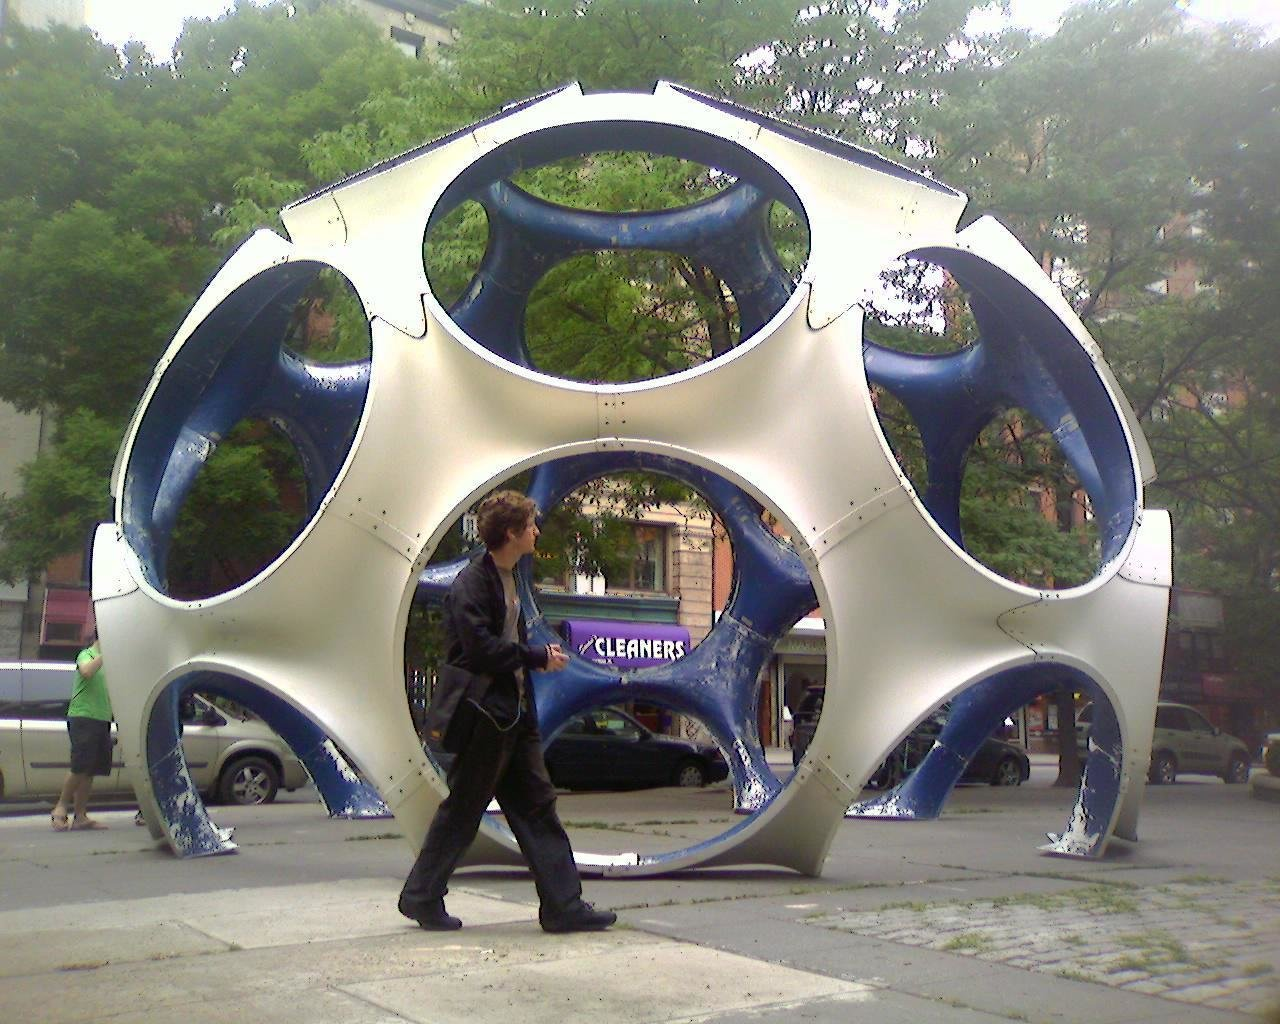 """Fly's Eye Domes  Fully realized during the last few years of his life, these """"autonomous dwellings"""" were the culmination of all his learning and experience, according to Fuller. The """"fly's eye"""" holes can be used as doors or outfitted with wind or solar power to create off-the-grid housing. The largest model, a 50-foot-high dome, debuted in LA in 1981 and was out-of-sight for decades before being restored and shown at the Toulouse International Art Festival last year.   Photo by aaronbflickr, Creative Commons  Photo 8 of 9 in Design Icon: 8 Works by Buckminster Fuller"""